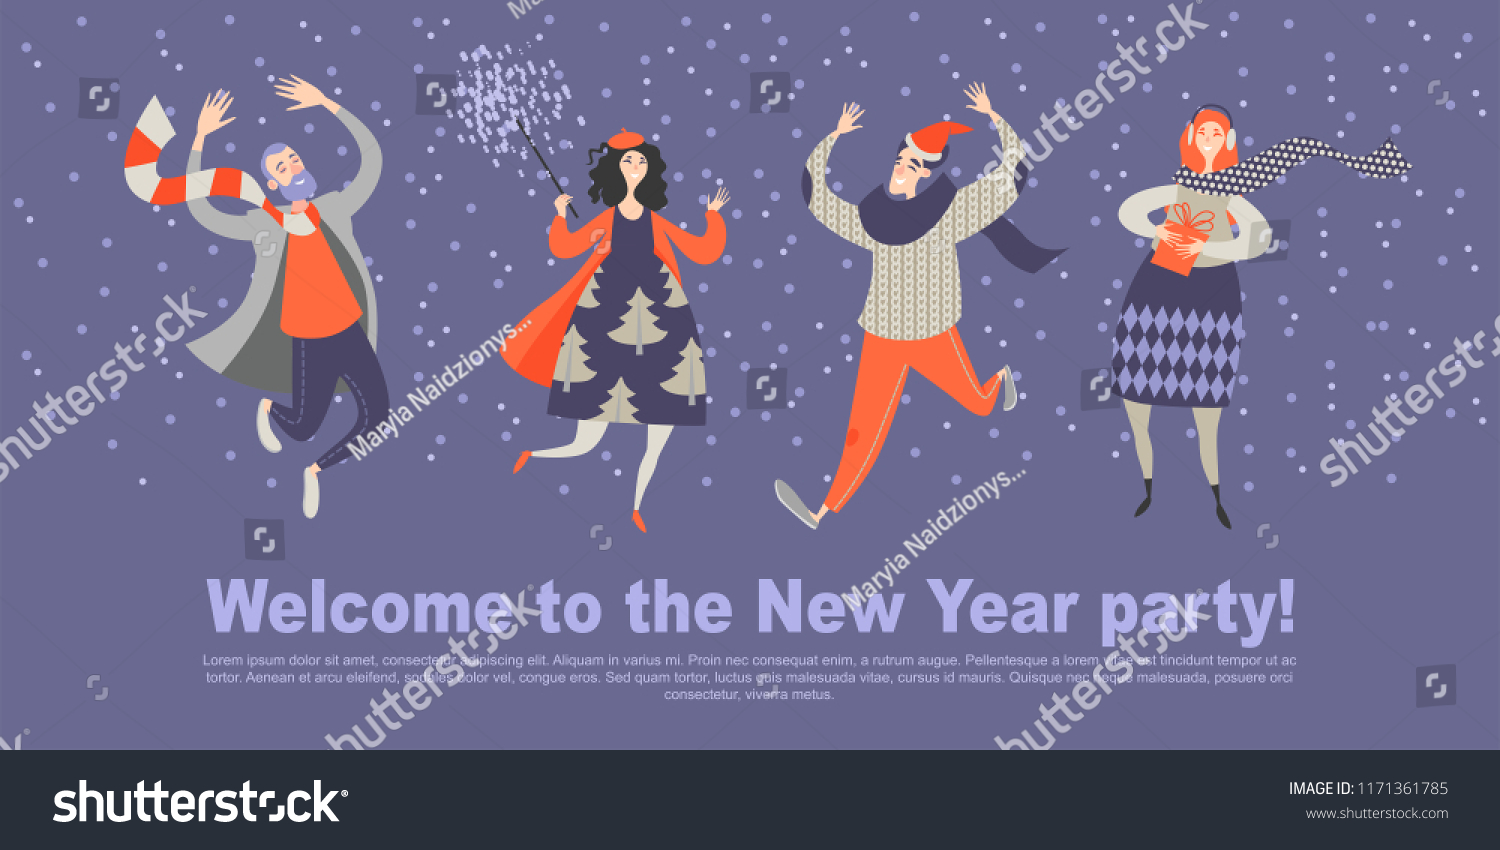 Invitation Card New Year Party Four Stock Vector Royalty Free